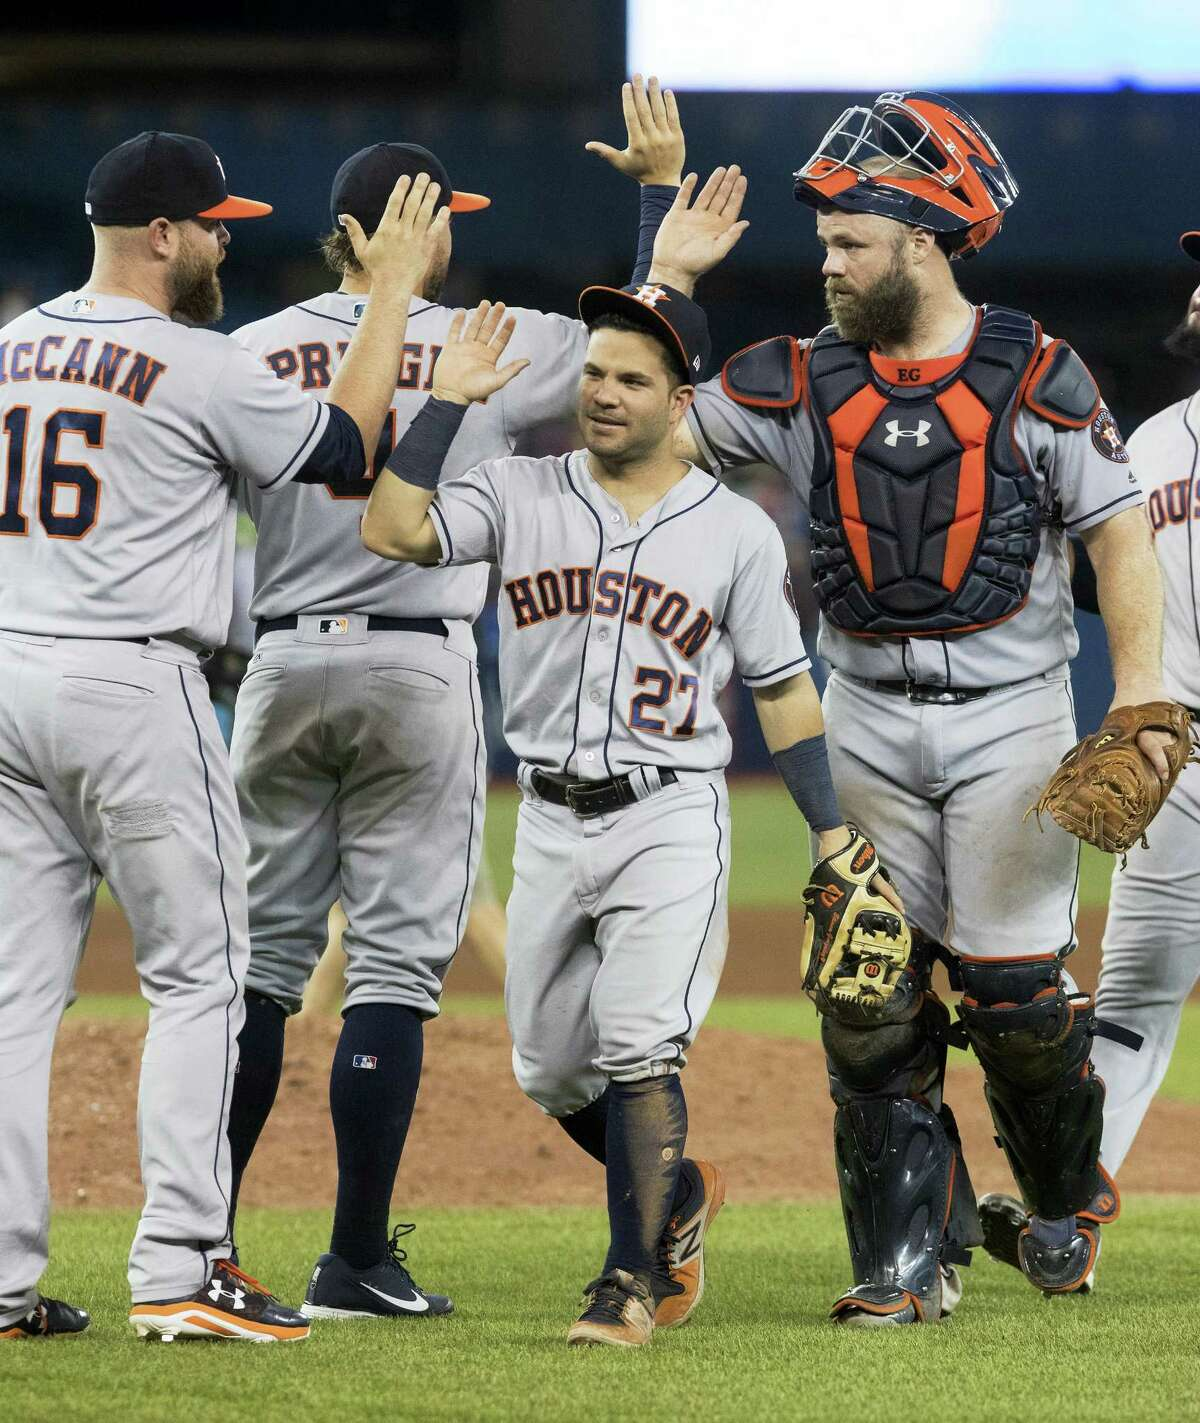 The Houston Astros celebrate after defeating the Toronto Blue Jays 12-2 in a baseball game Friday in Toronto.